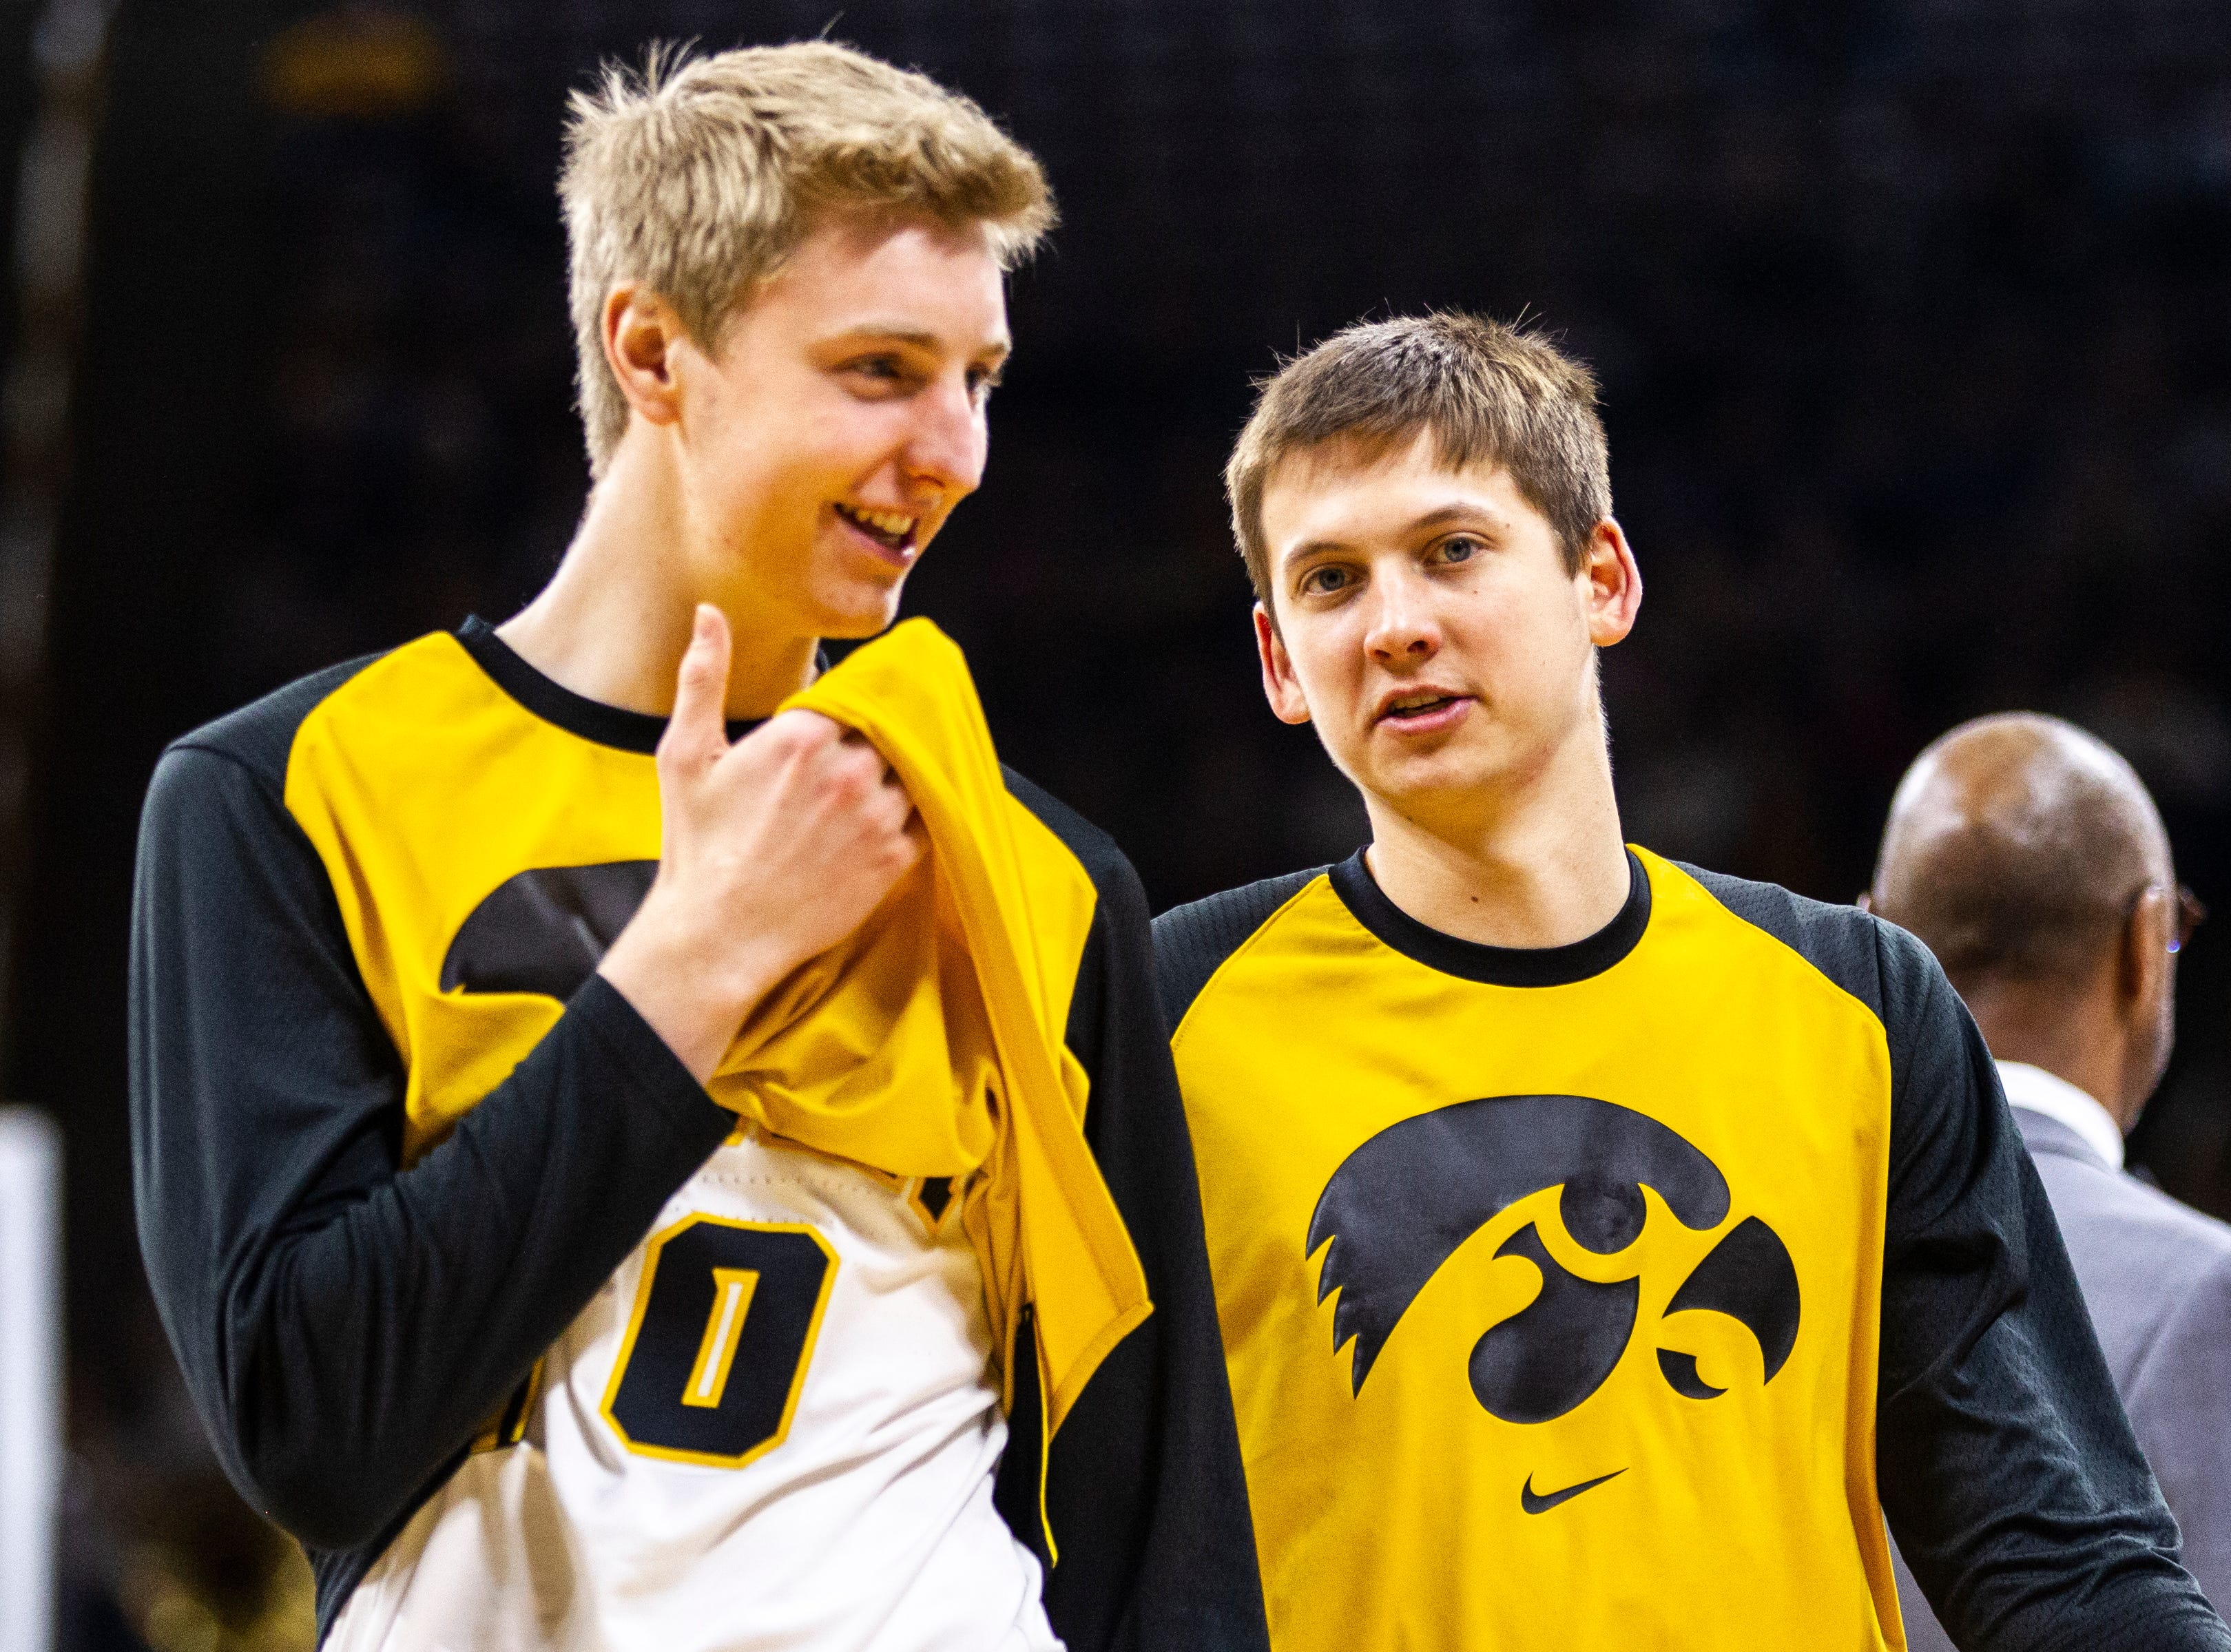 Iowa forward Michael Baer (0) talks with Iowa guard Austin Ash (right) during a NCAA Big Ten Conference men's basketball game on Sunday, Jan. 20, 2019, at Carver-Hawkeye Arena in Iowa City, Iowa.